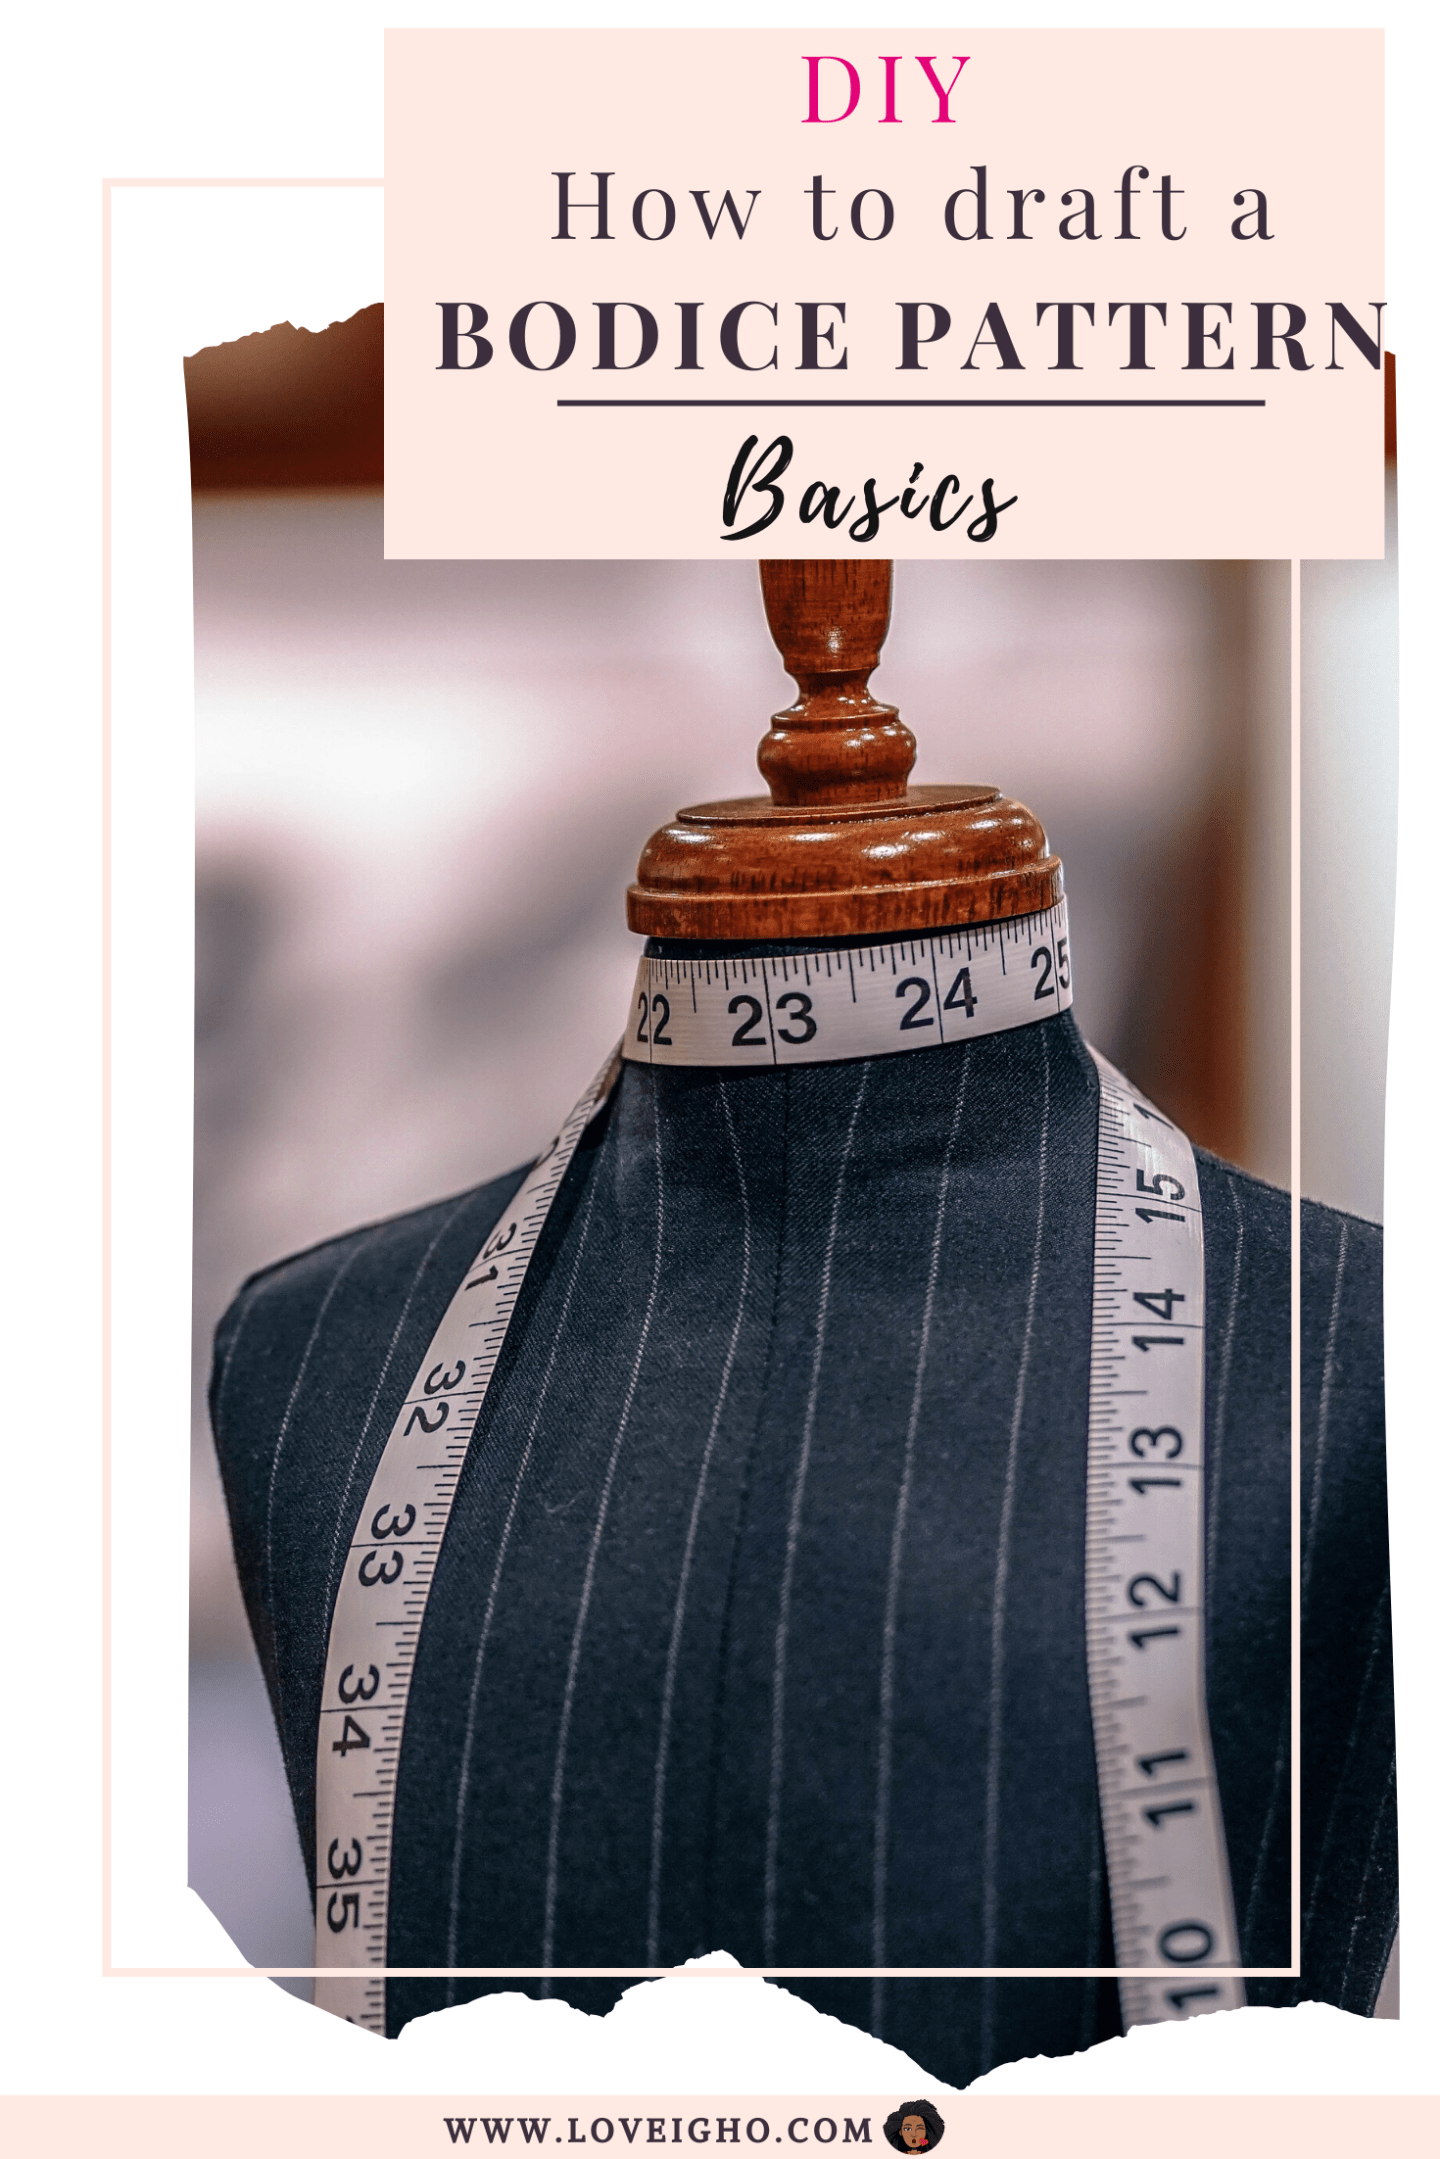 How to draft a basic bodice pattern | Love Igho